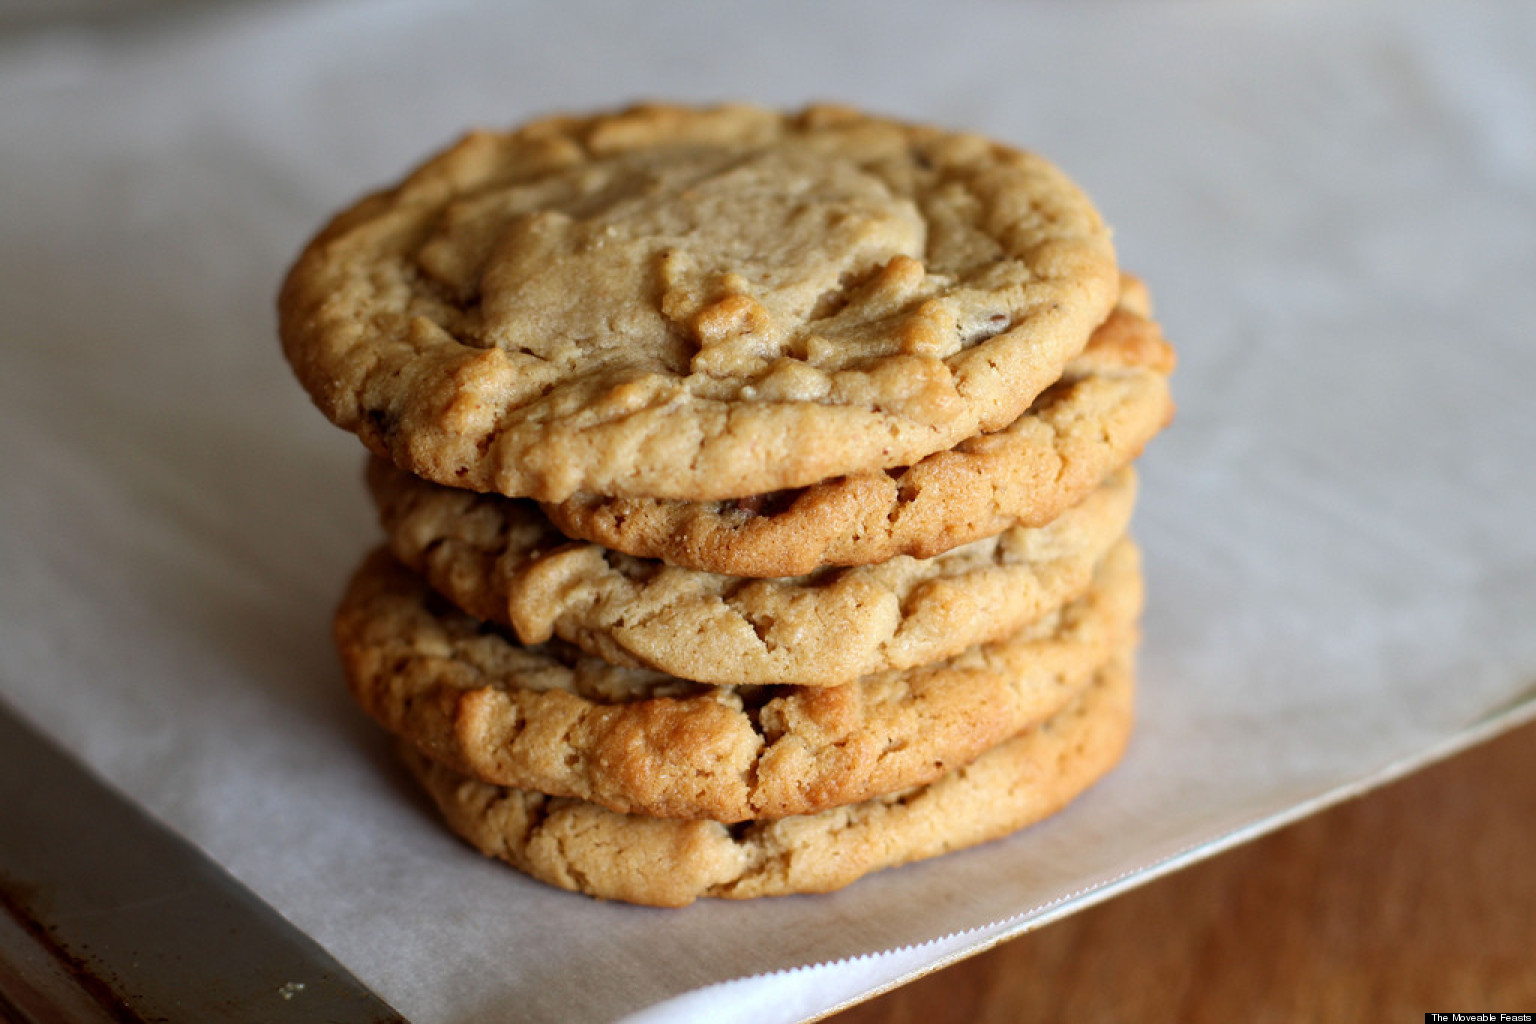 Peanut Butter Cookie Recipes To Try On National Peanut ...